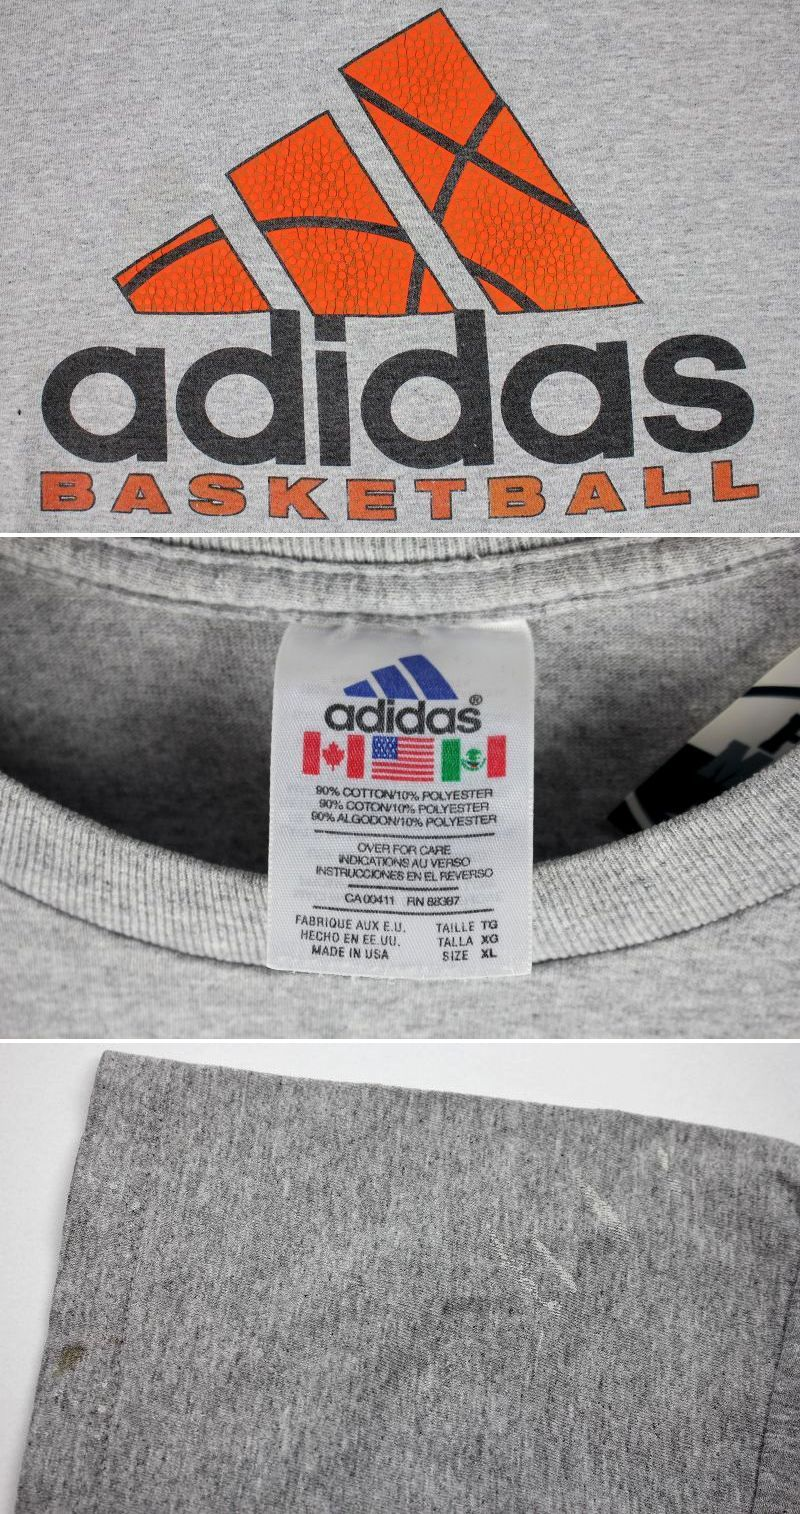 USED!!! adidas BASKETBALL / LOGO Tee (90'S) / heather grey